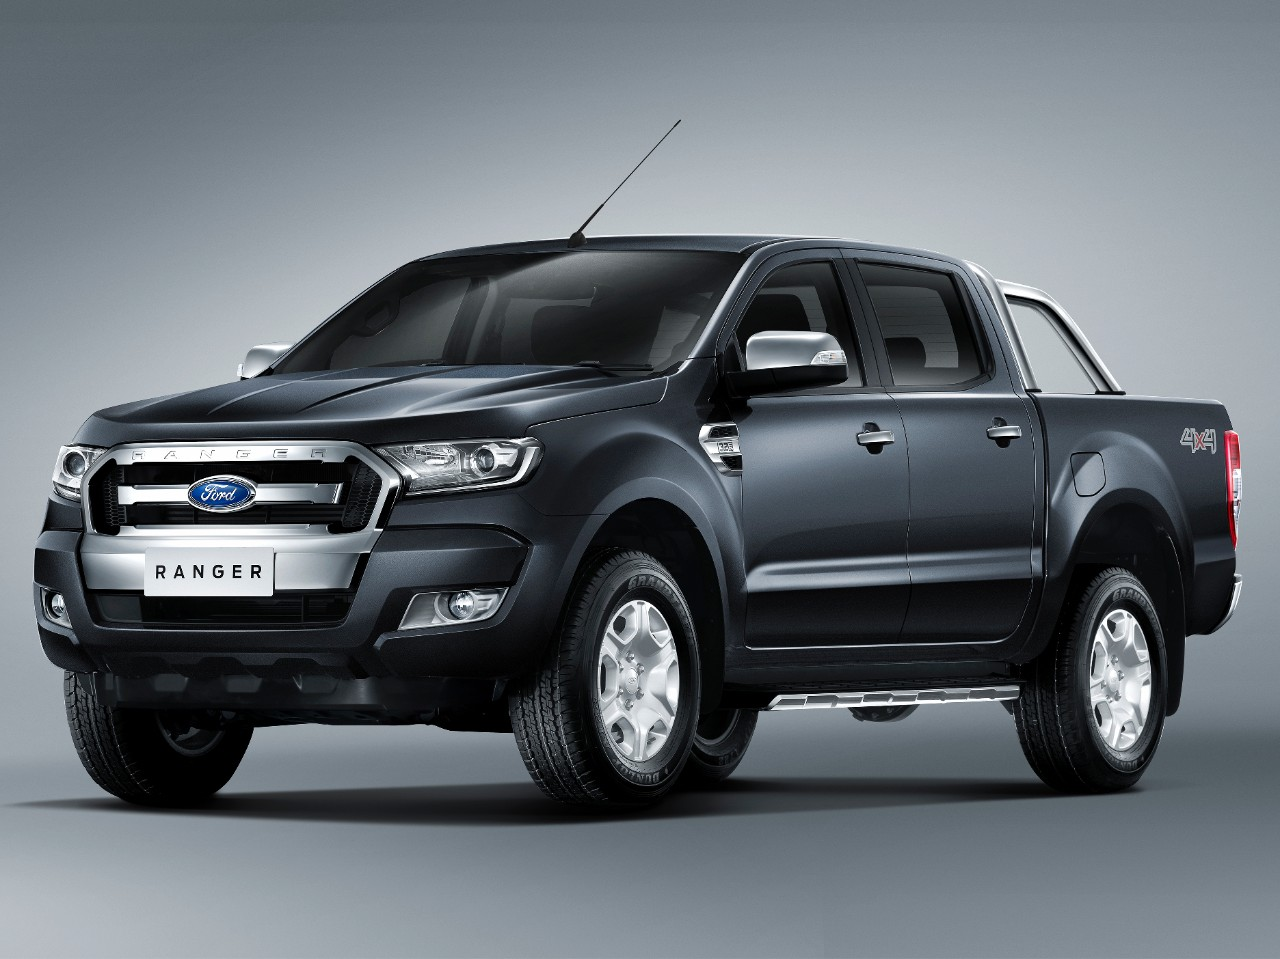 New Ford Ranger 1_Front 3qtr_Hero_Image